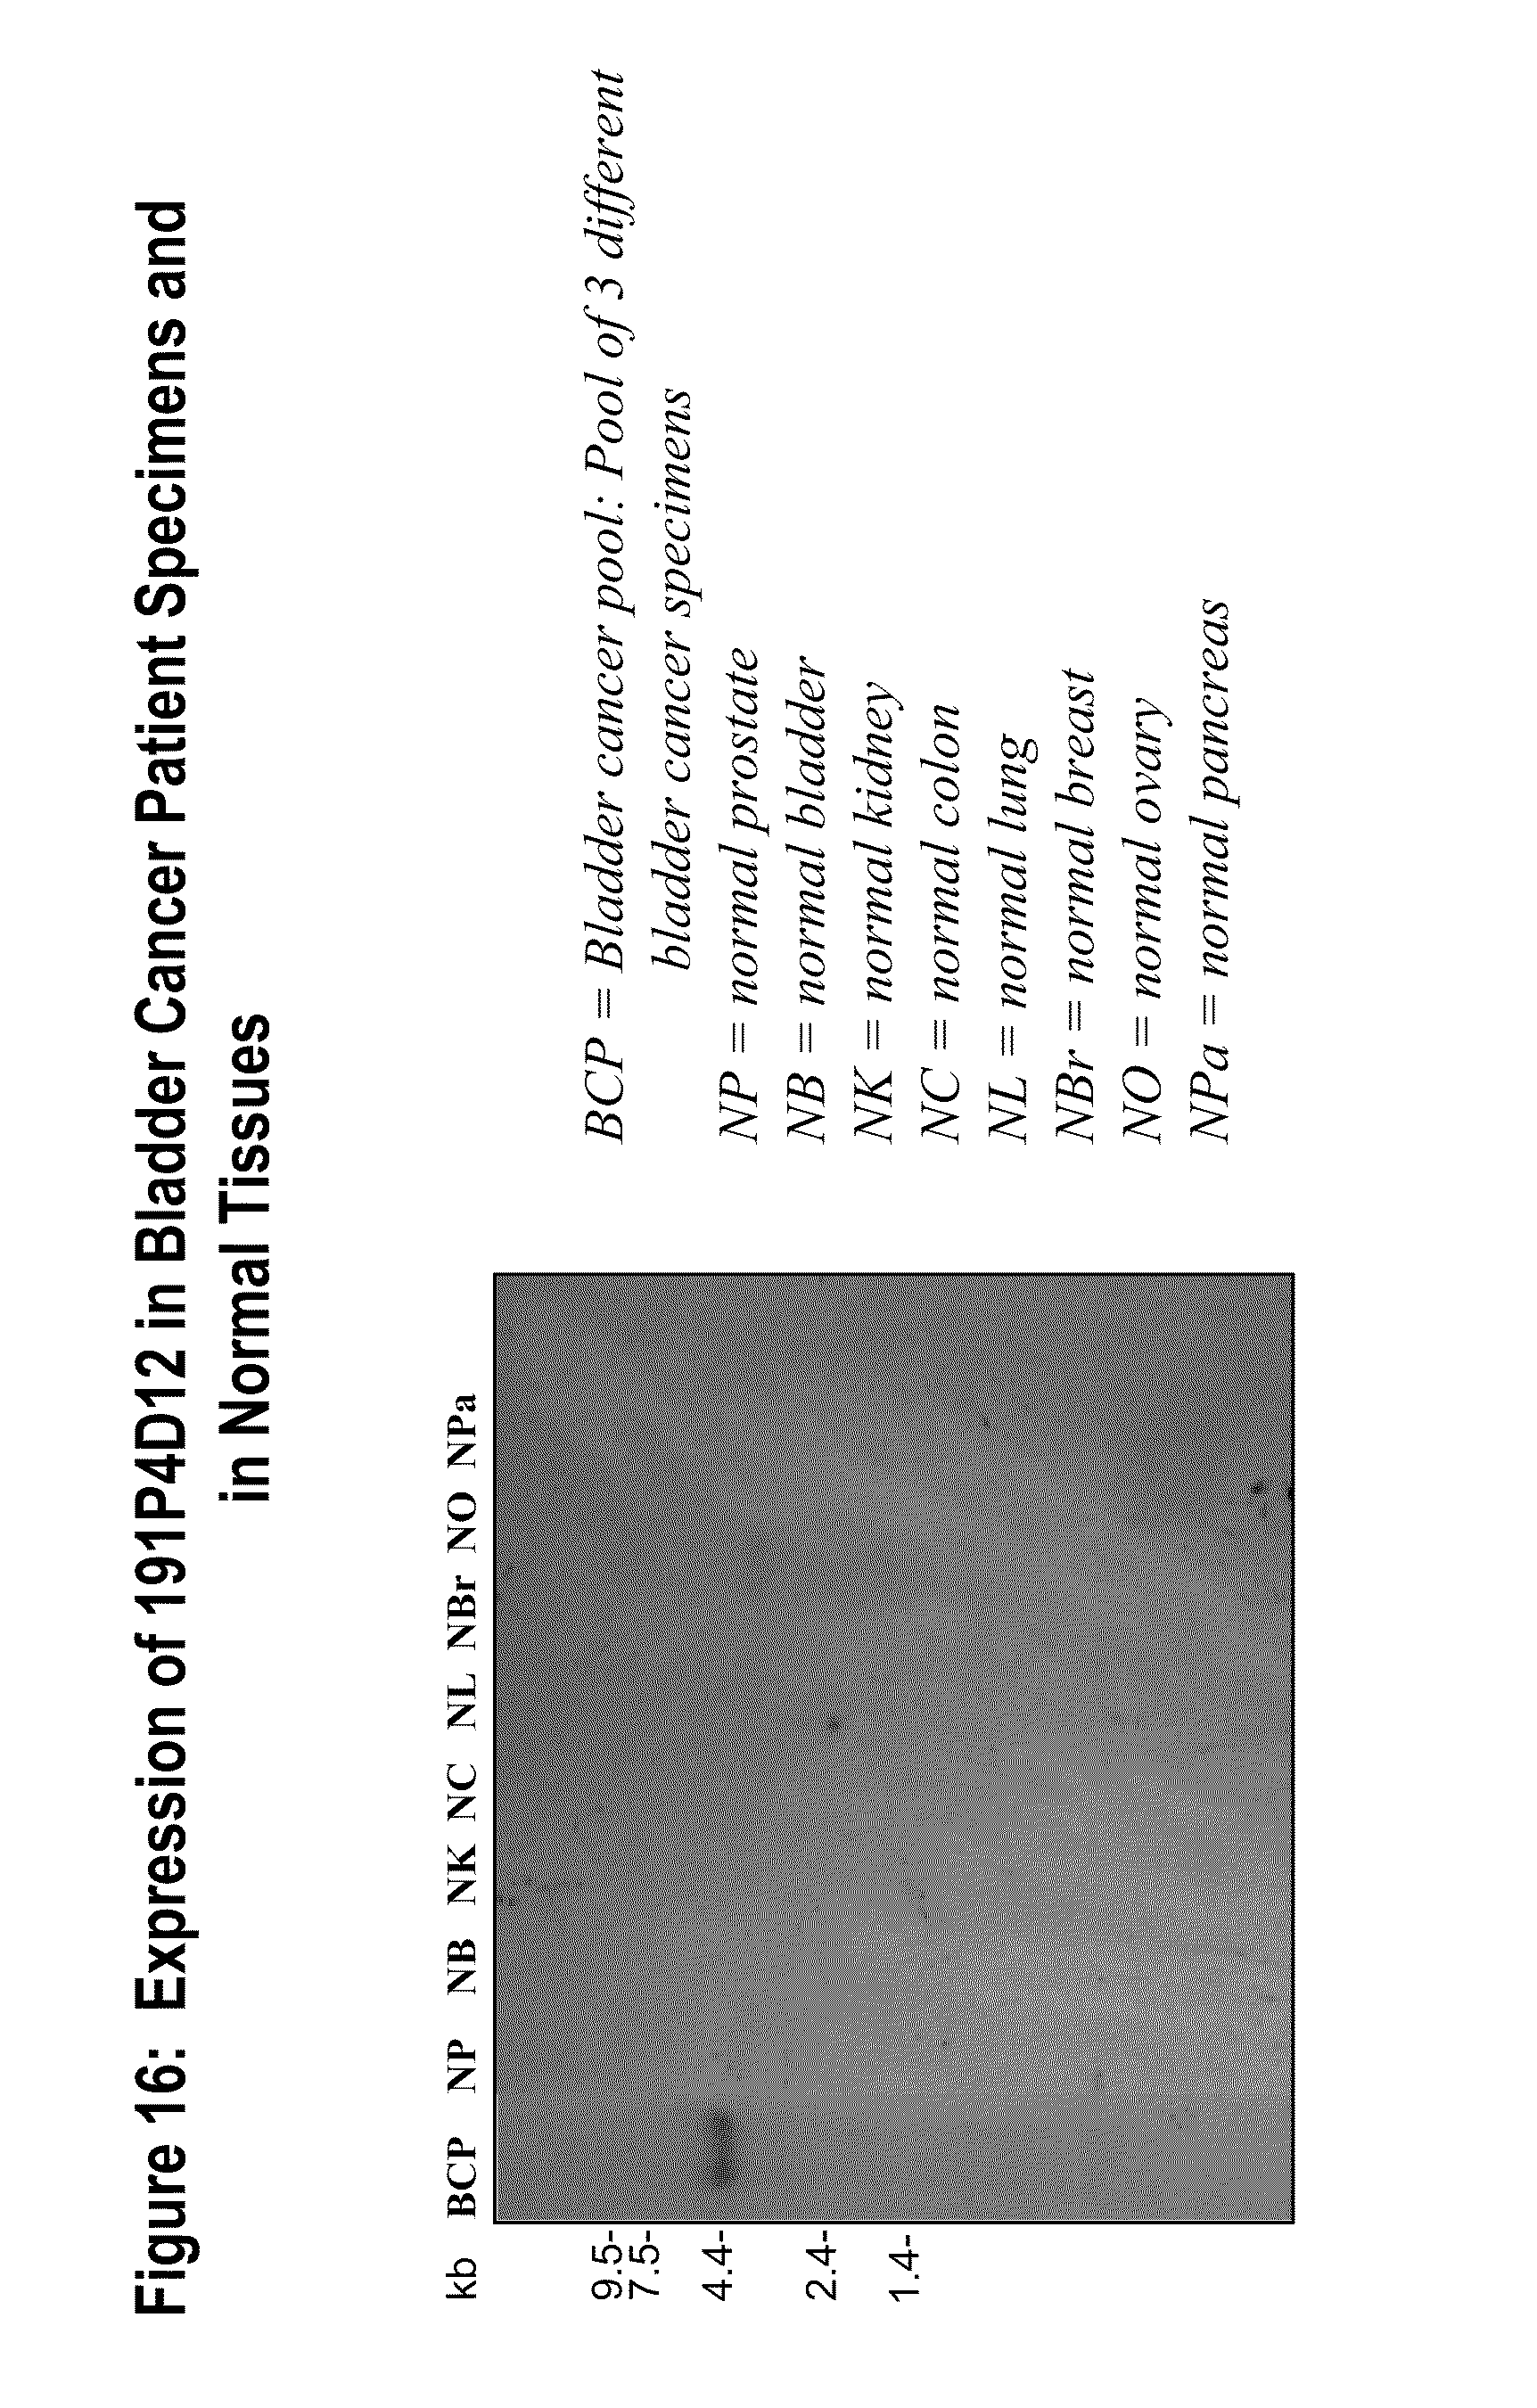 d20c64f07 US20100297669A1 - NUCLEIC ACIDS AND CORRESPONDING PROTEINS ENTITLED  191P4D12(b) USEFUL IN TREATMENT AND DETECTION OF CANCER - Google Patents